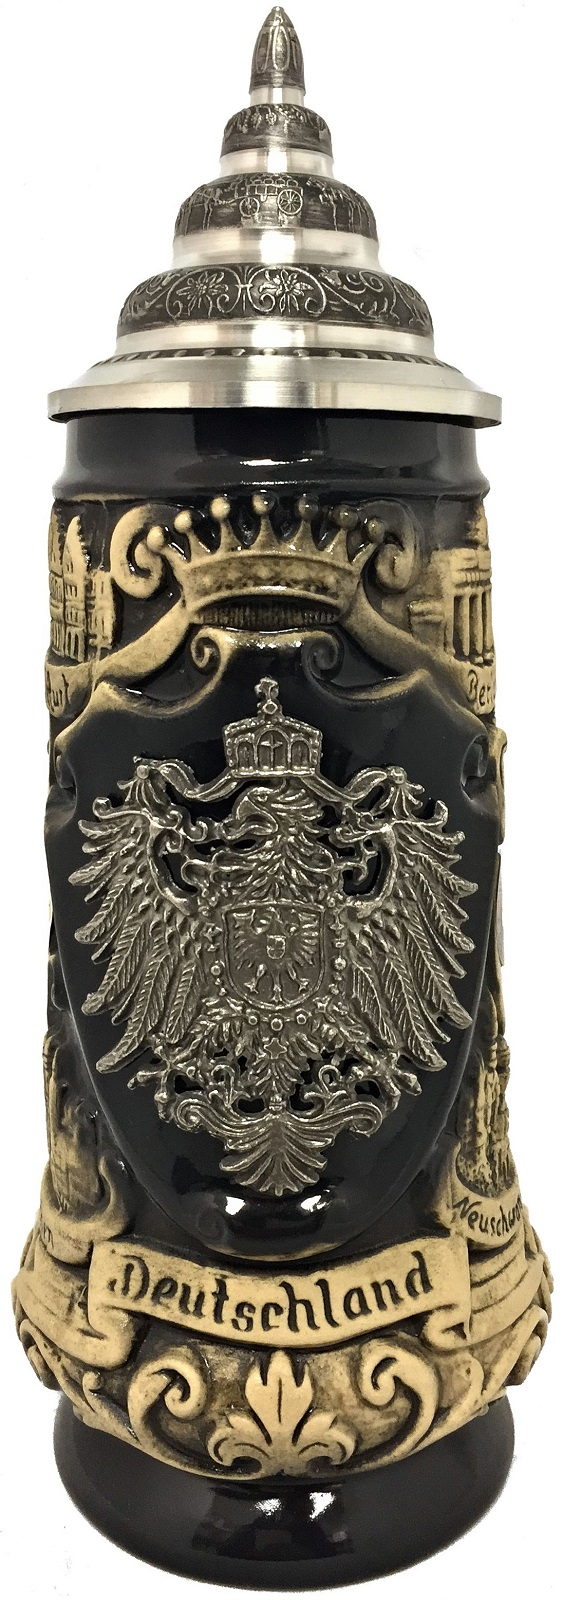 rustic deutschland germany pewter eagle with cities le german beer stein 3 l. Black Bedroom Furniture Sets. Home Design Ideas